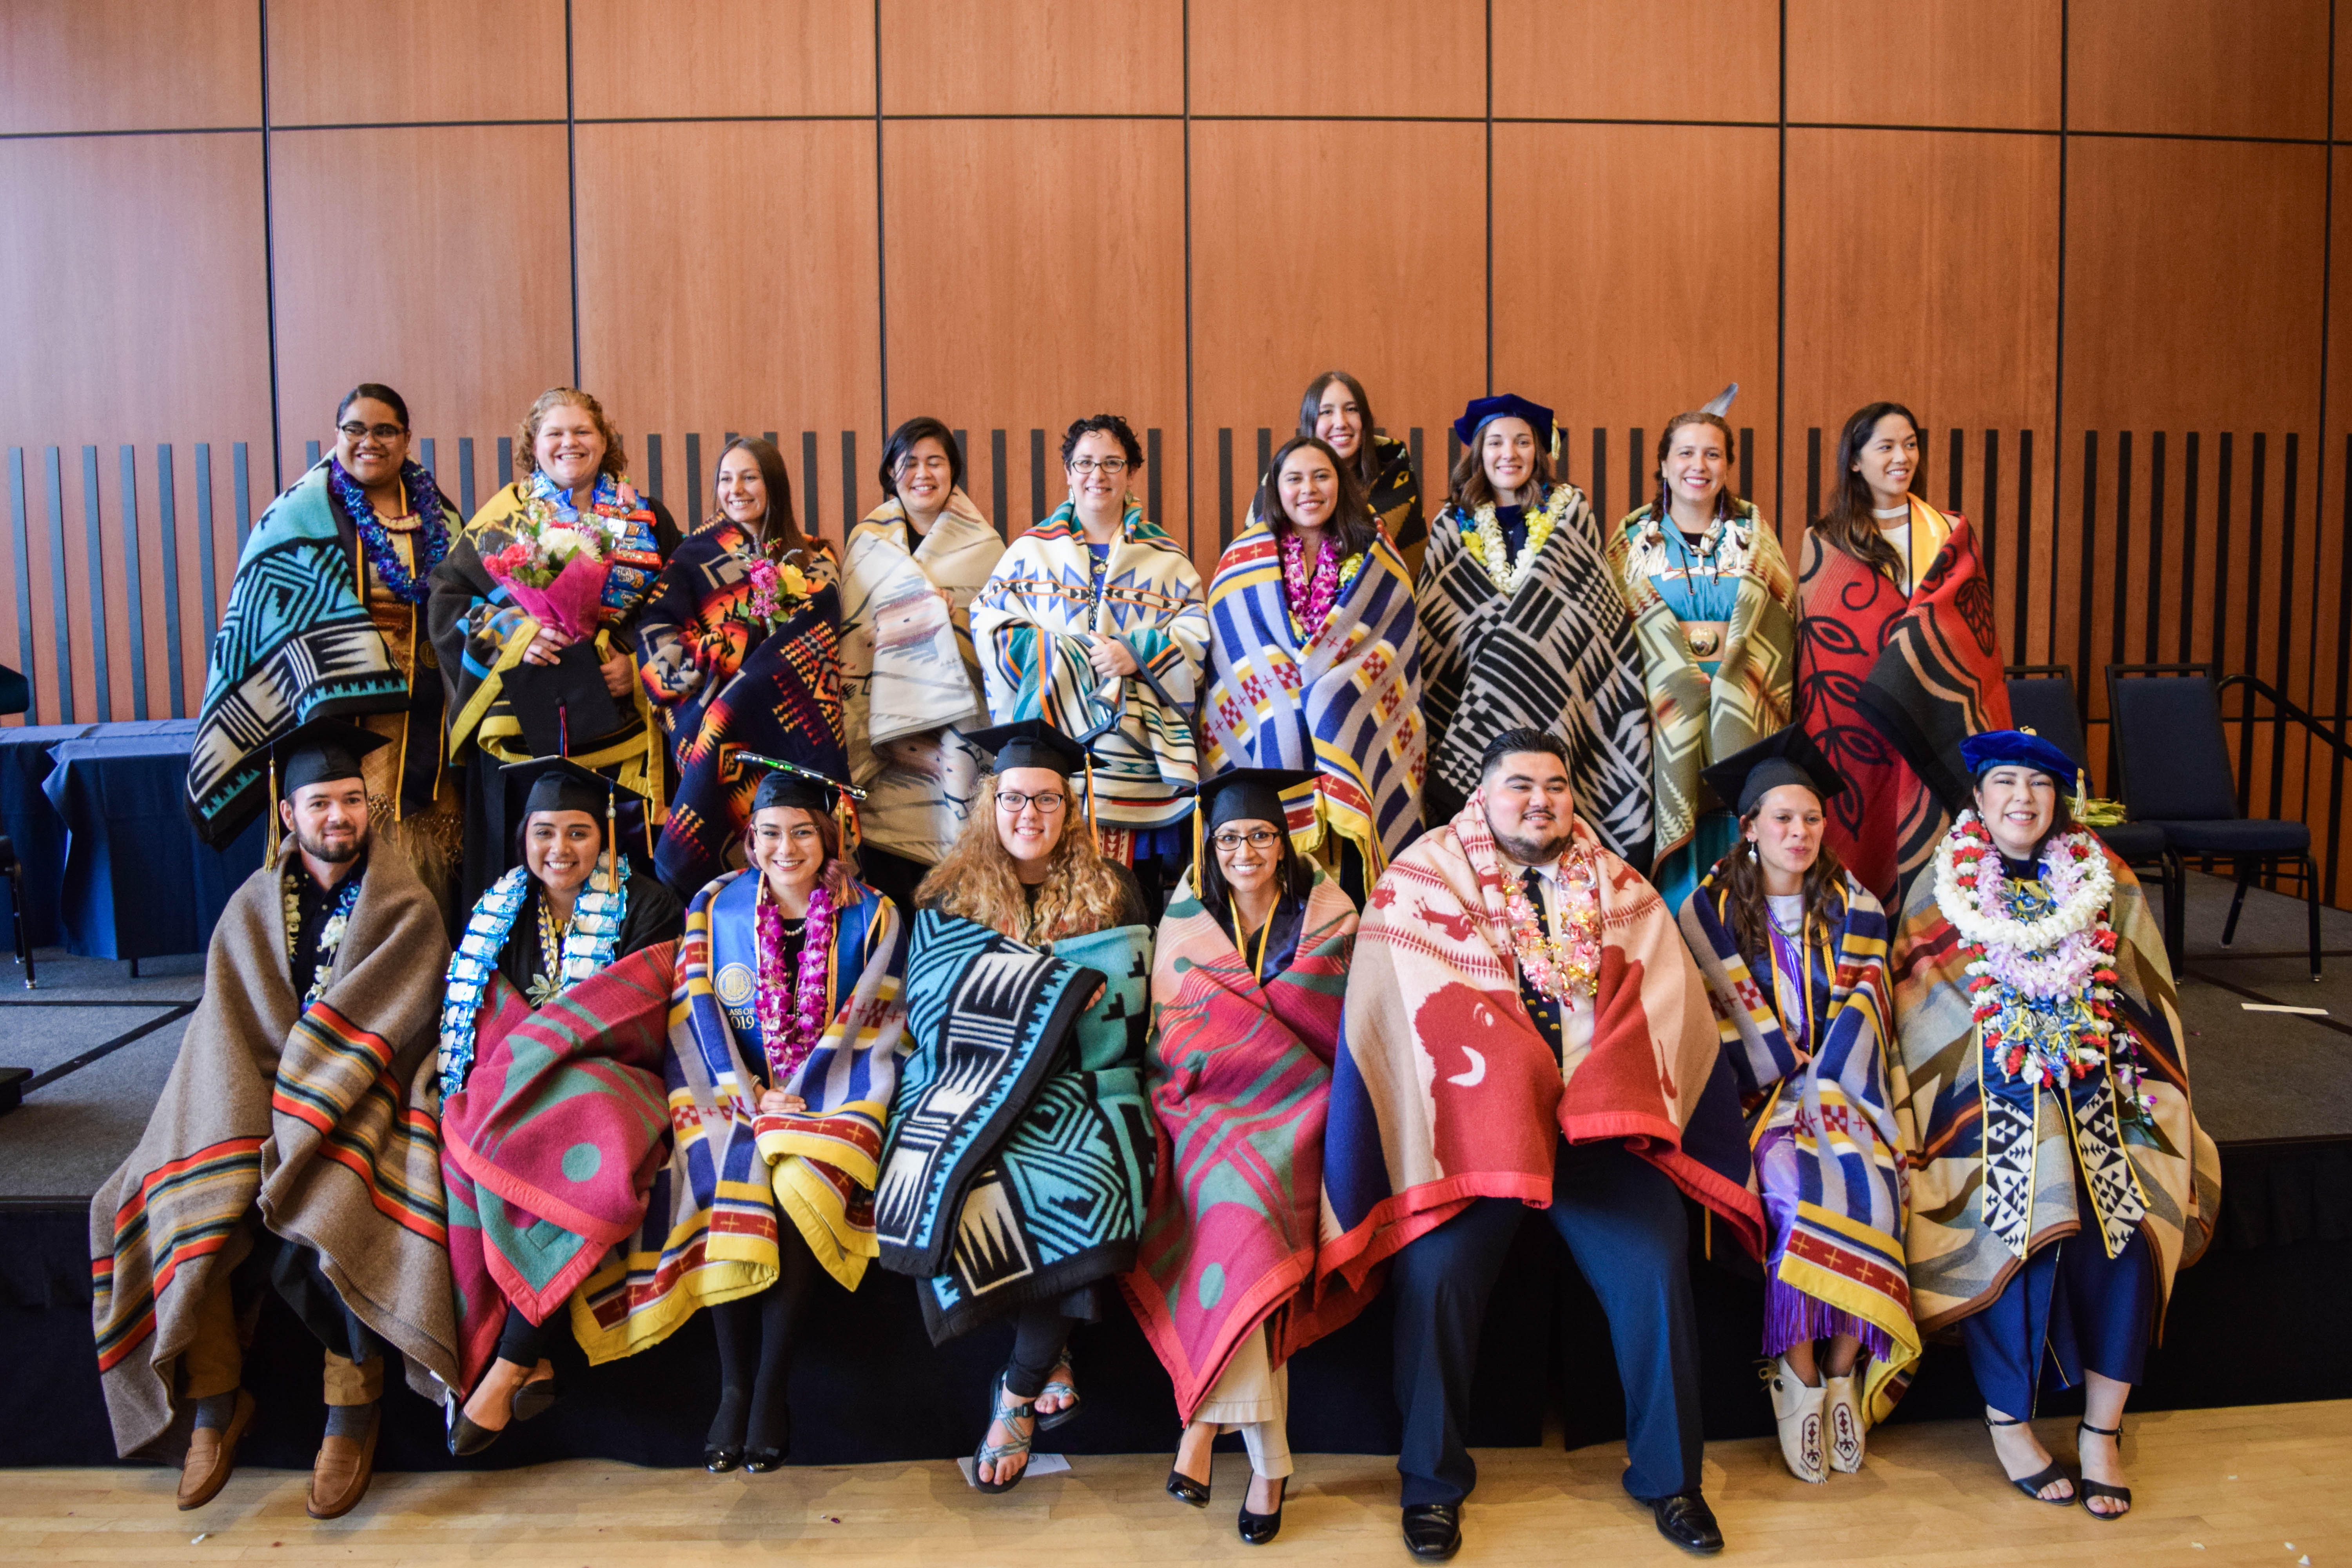 Photo of about 20 graduate students wearing graduation caps and wrapped in traditional Native American blankets.